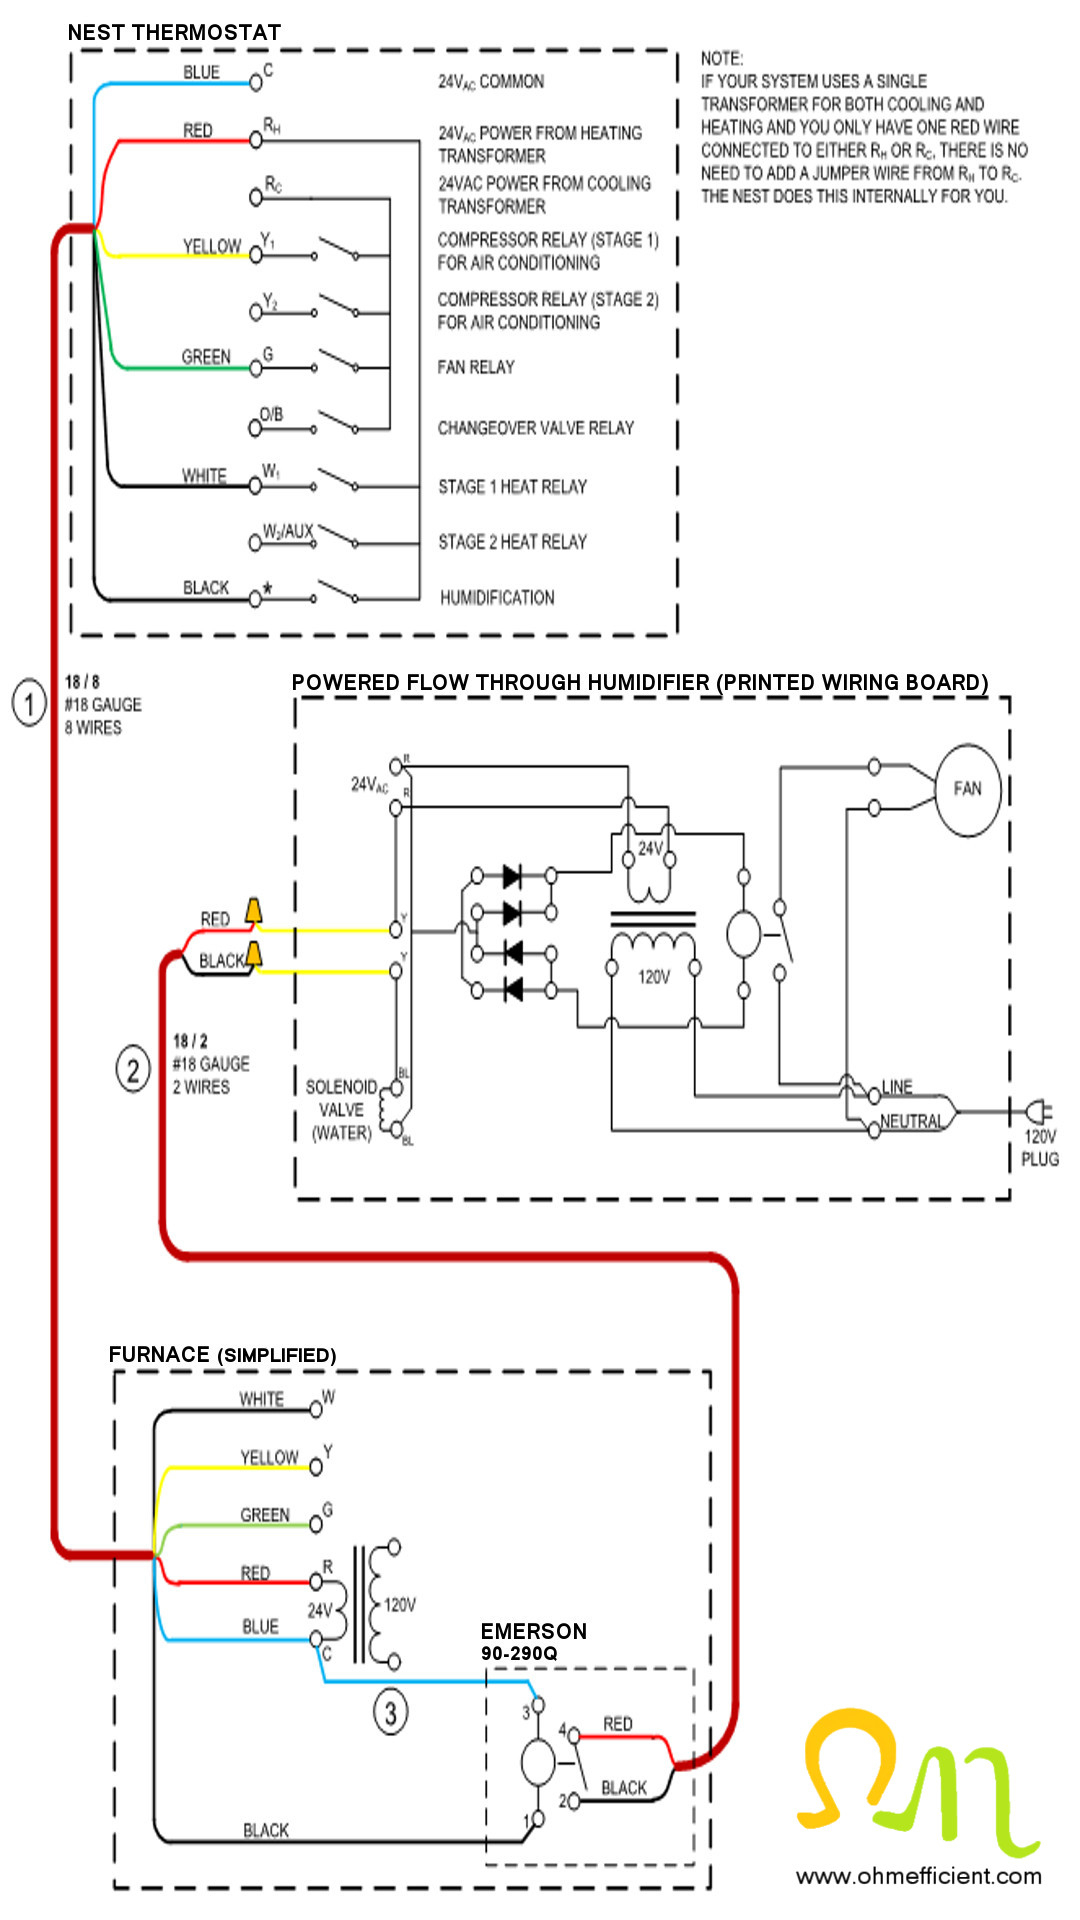 Wiring Diagram For Nest Thermostat With Humidifier - Wiring Diagrams - Nest Thermostat 2Nd Generation Heat Pump Wiring Diagram